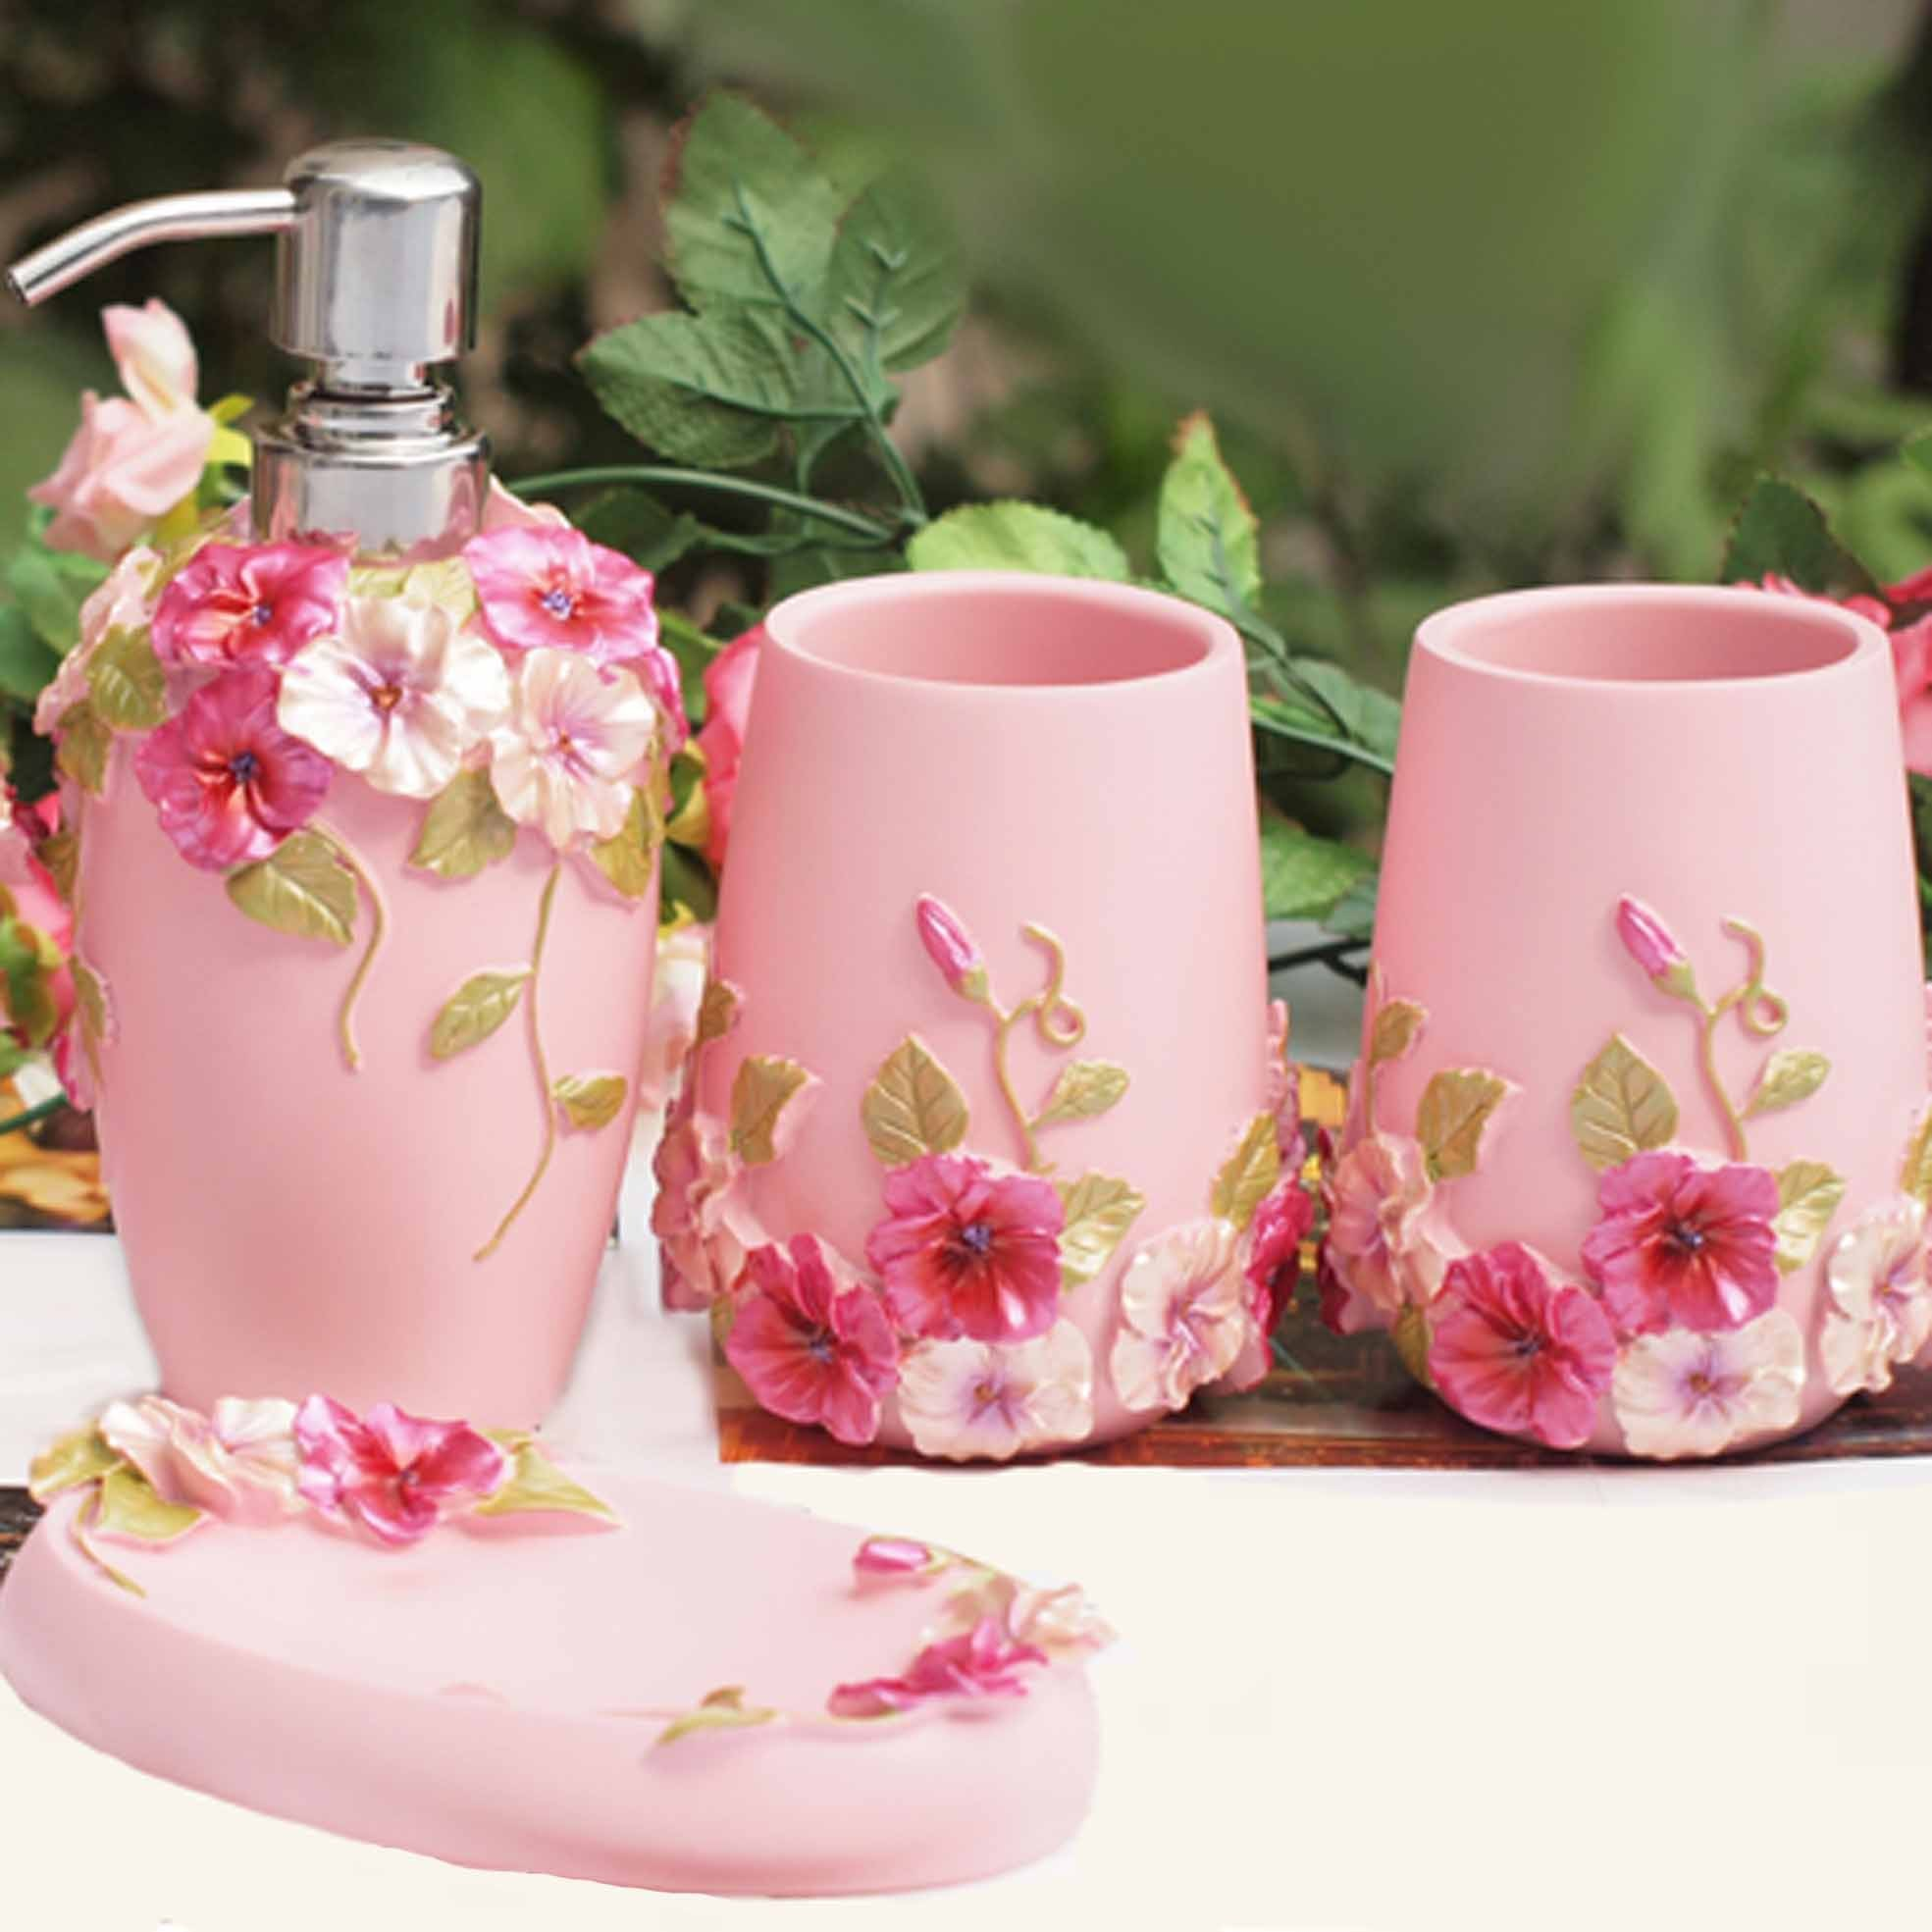 Chic bathroom accessories - Shabby Chic Bathroom Accessories Sets